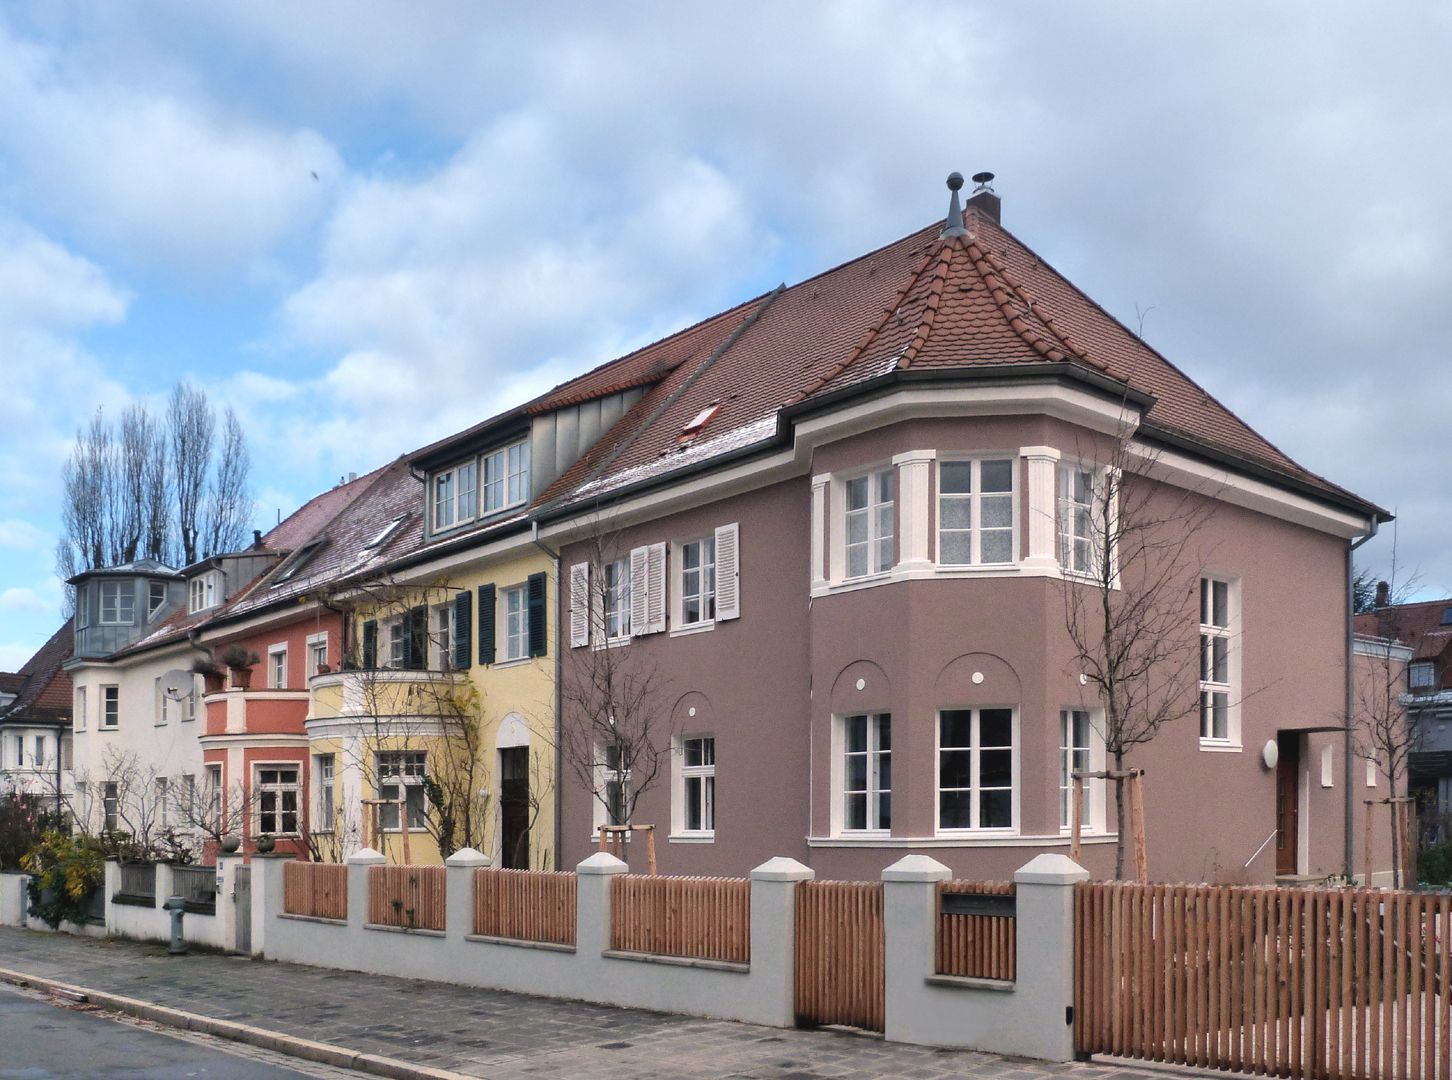 Row of houses in Danziger Straße view from the south